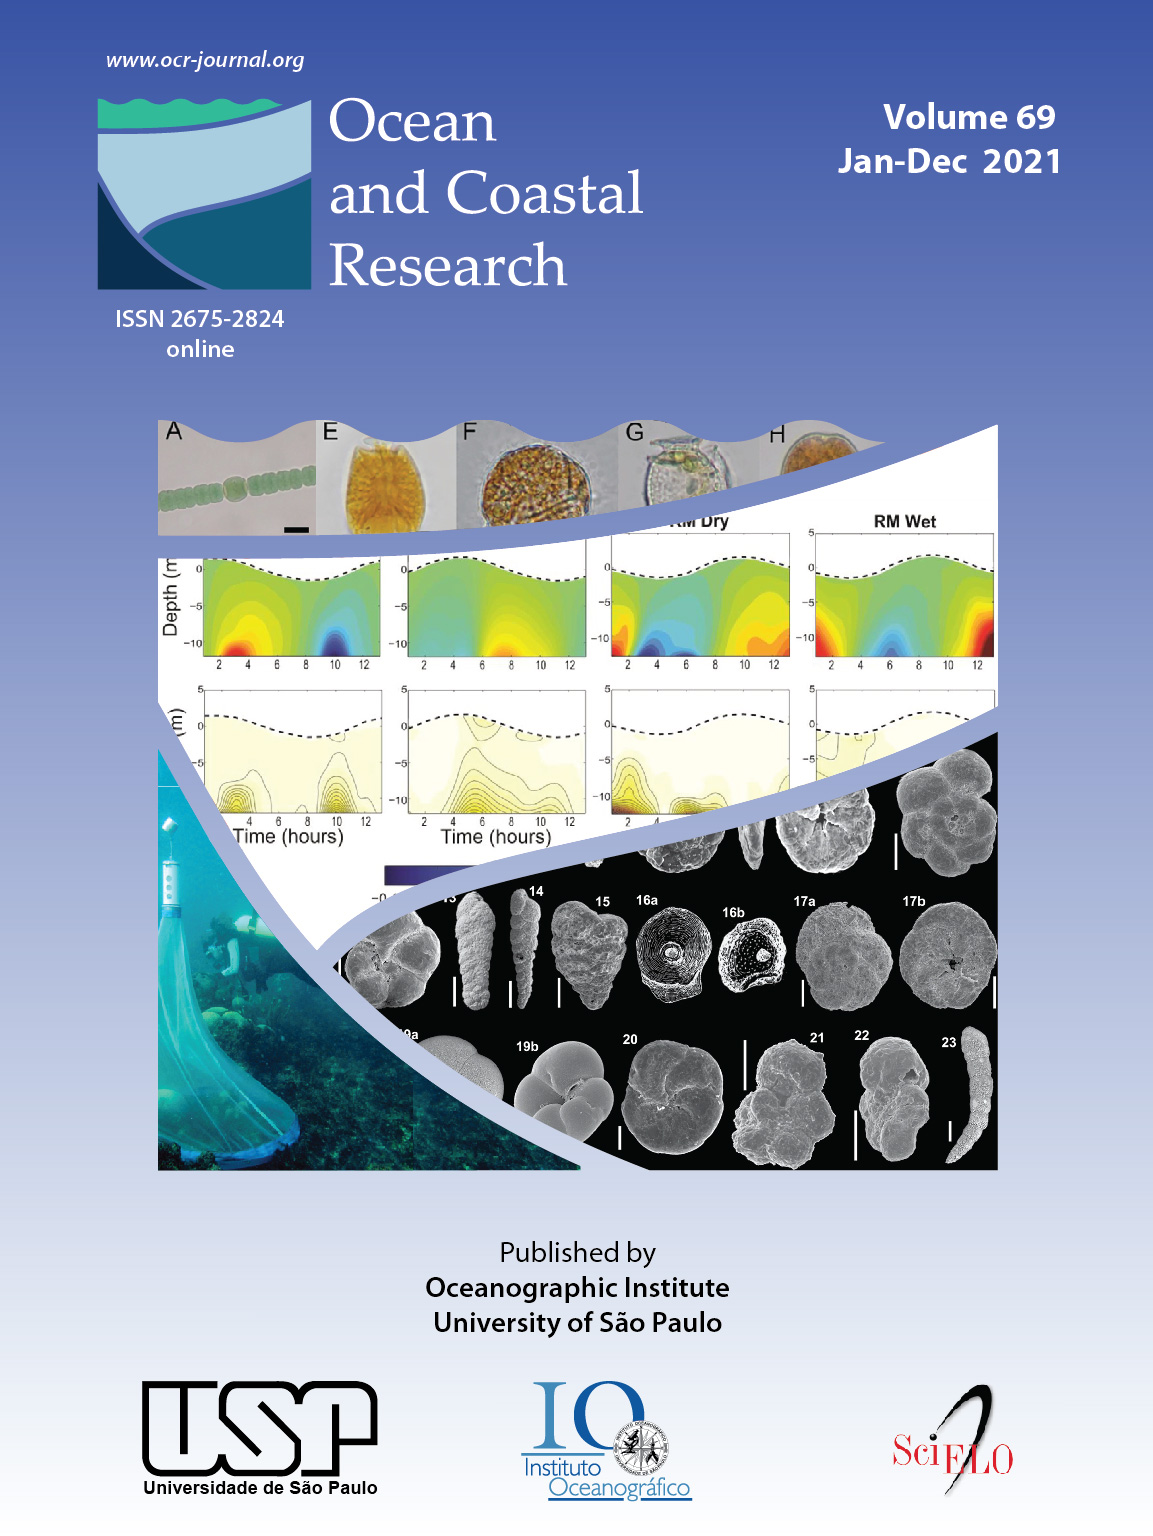 Ocean and Coastal Research 2021 -  Volume 69